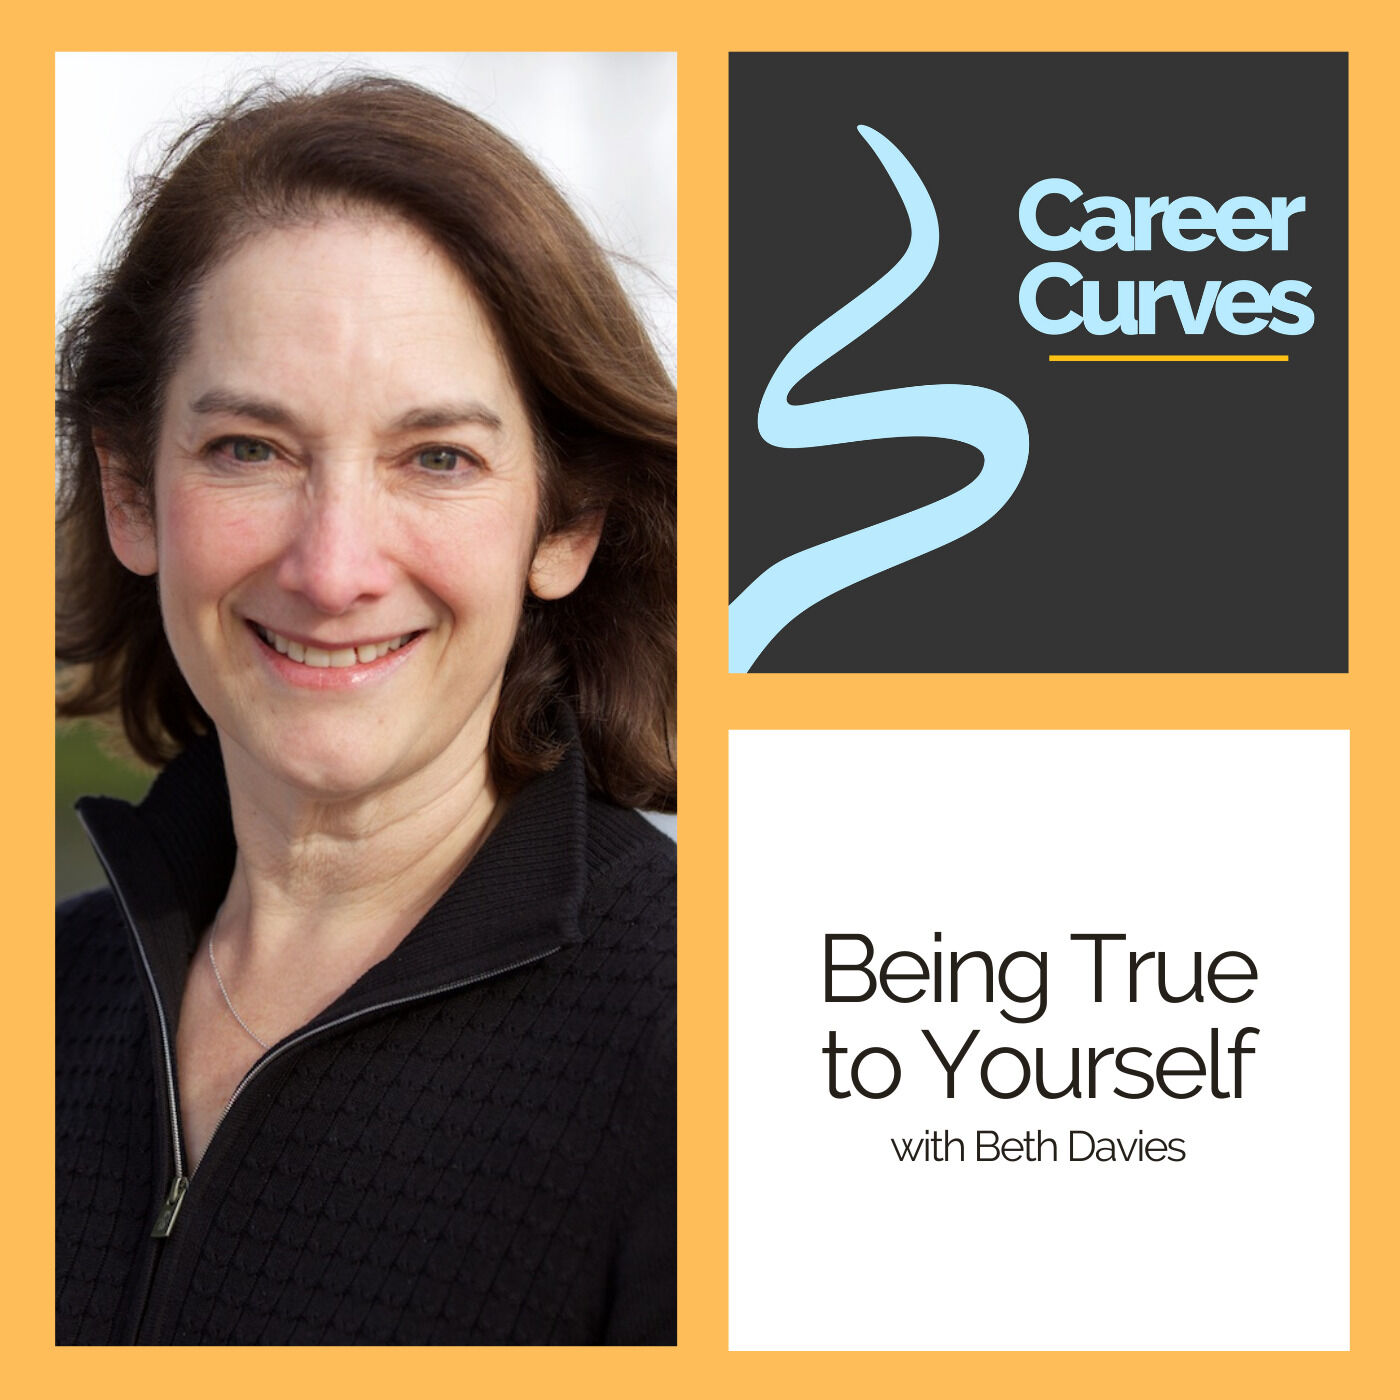 Being True to Yourself with Beth Davies